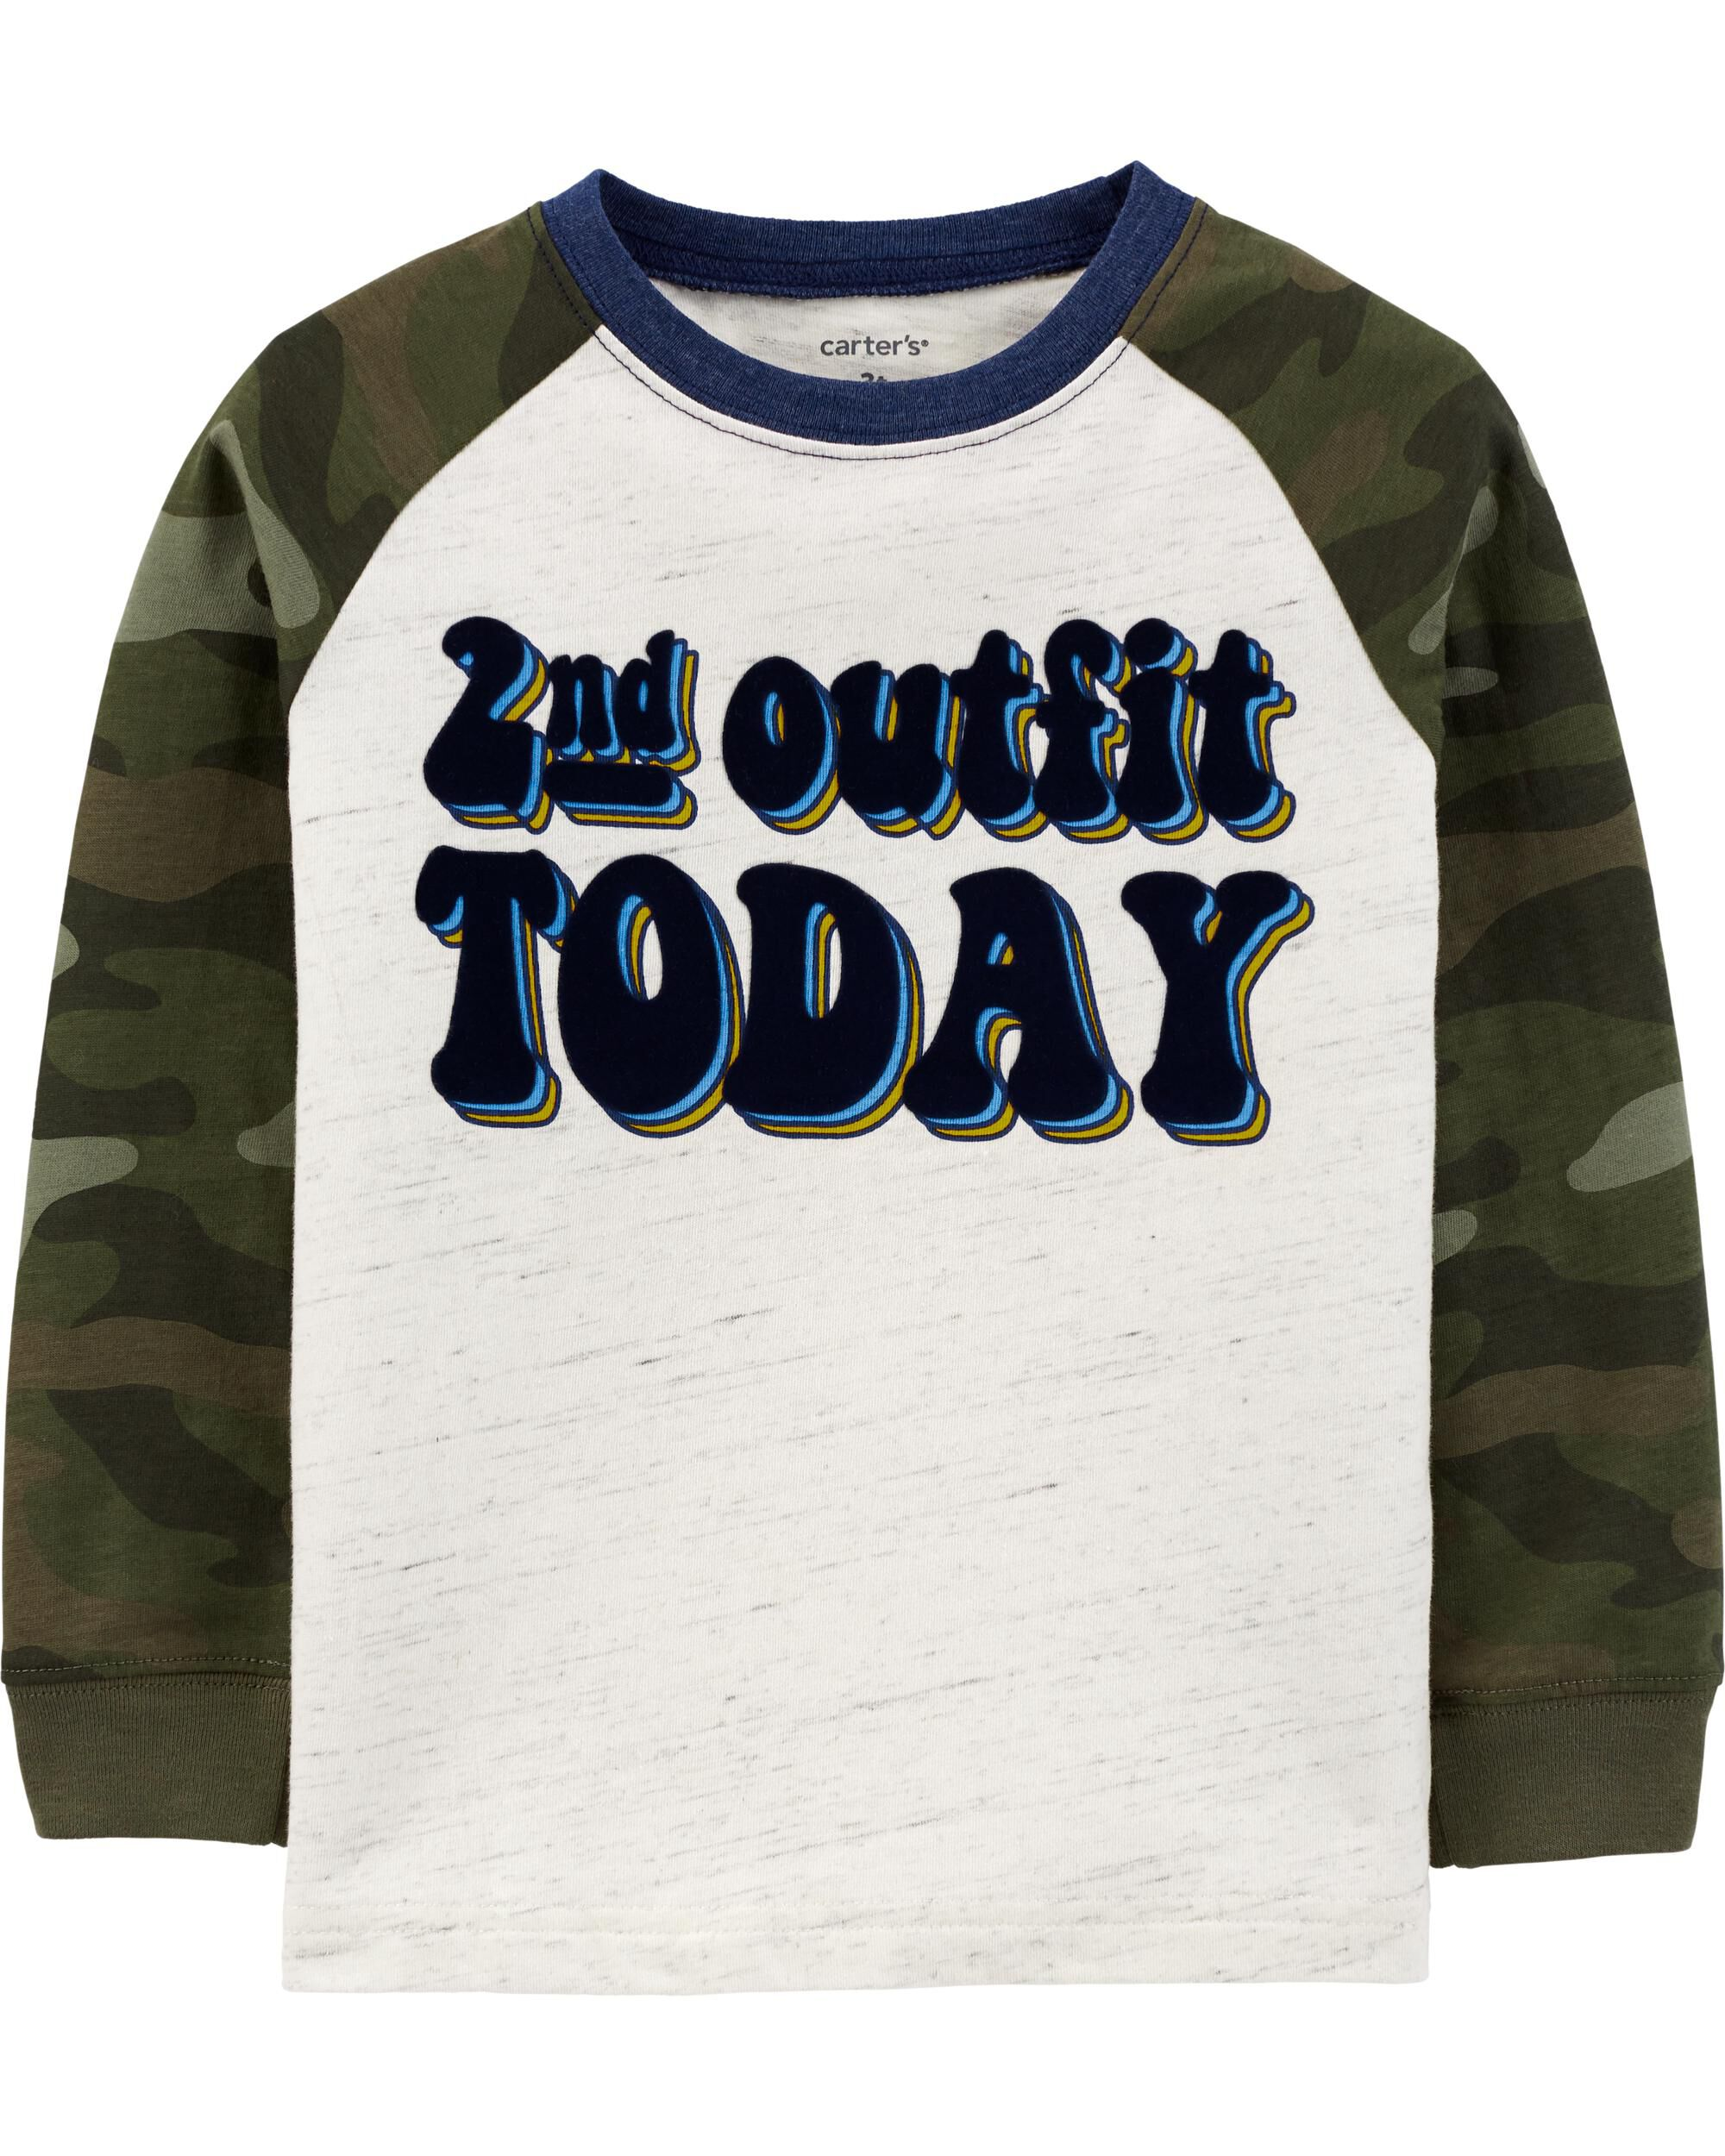 2nd Outfit Today Raglan Jersey Tee